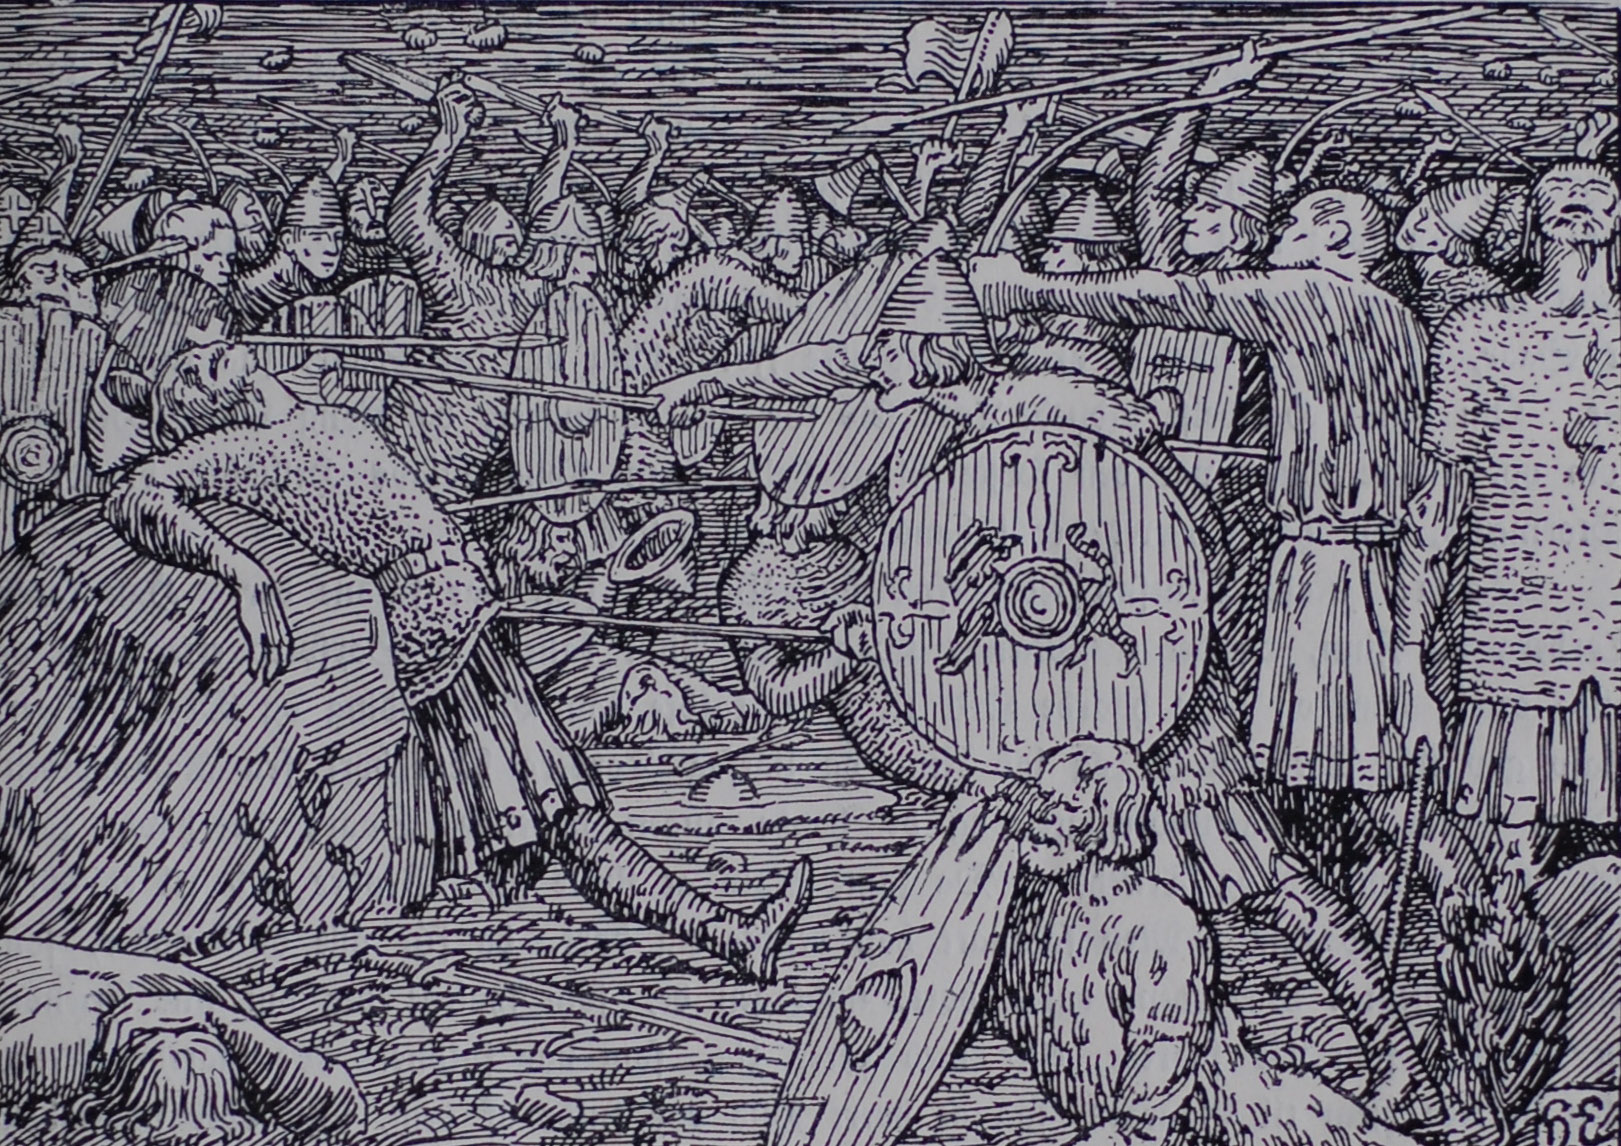 The Death of King Óláfr Haraldsson